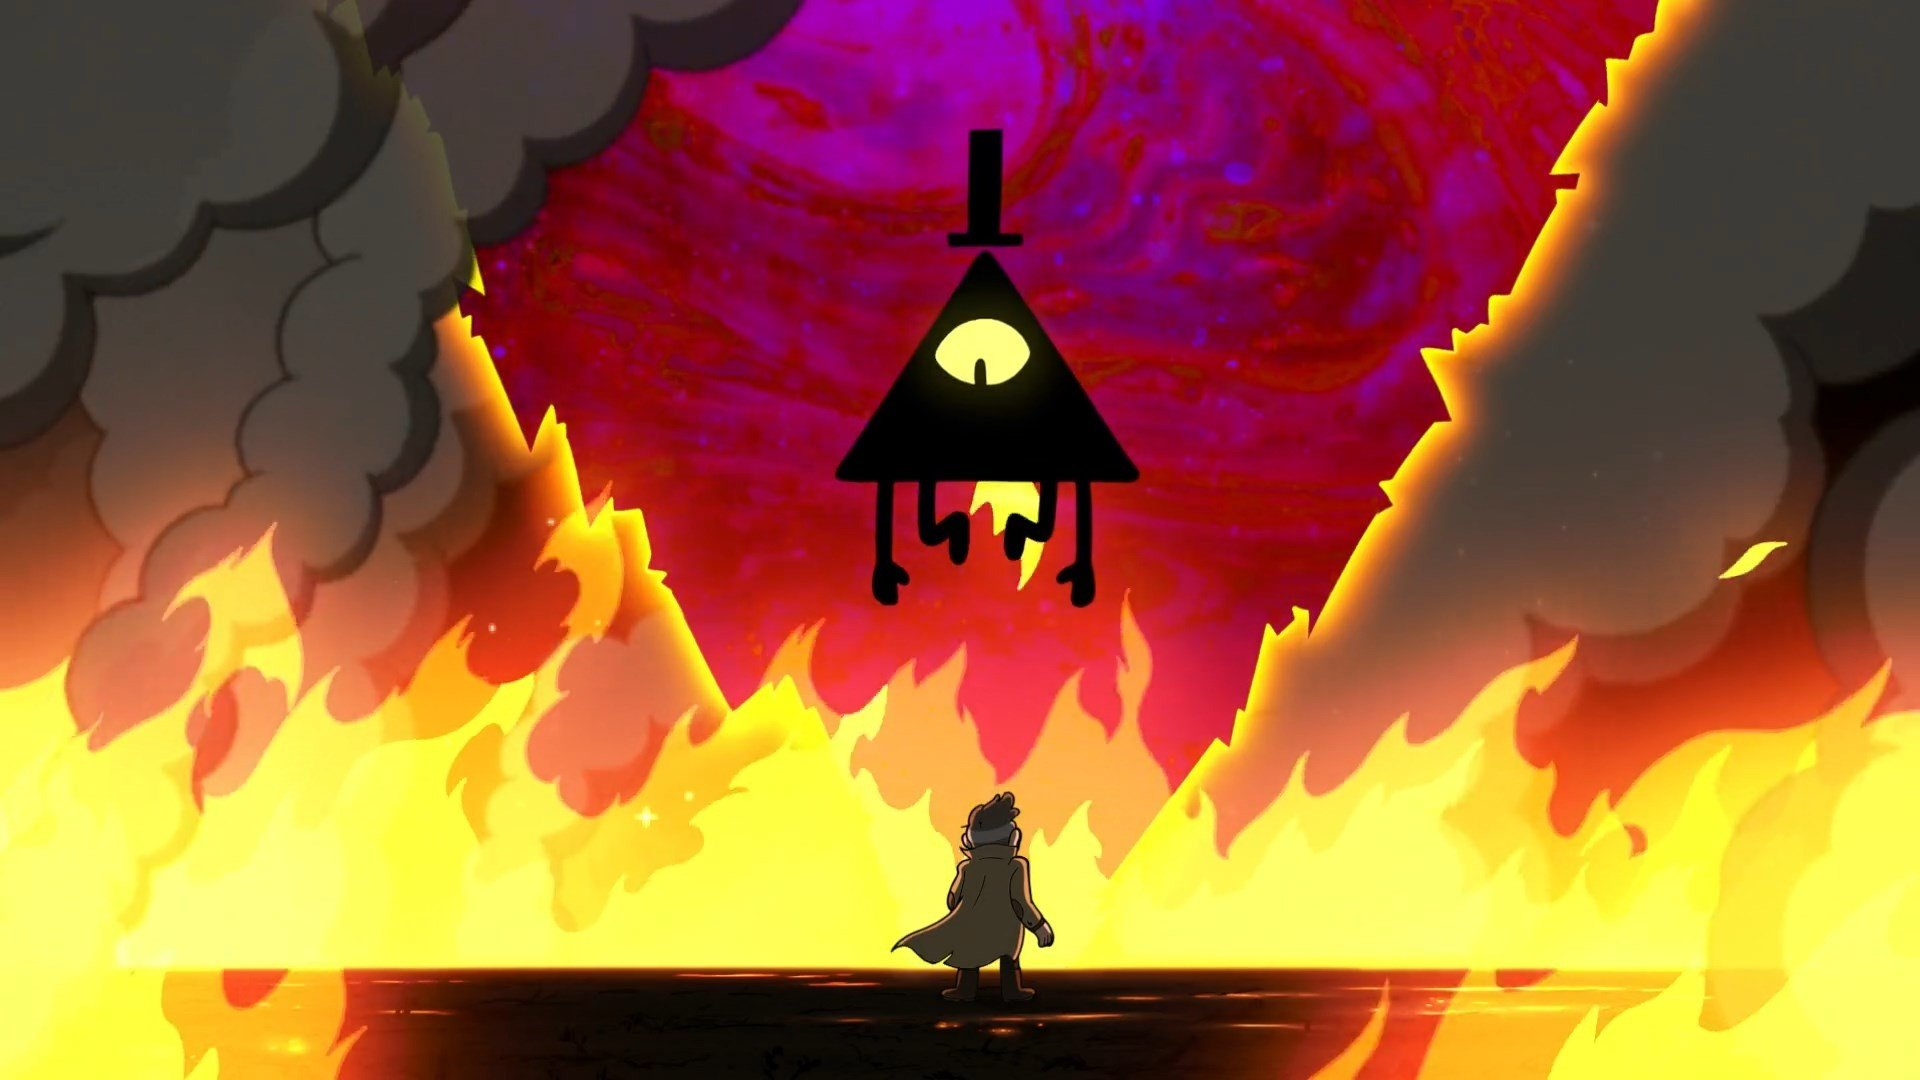 Gravity Falls Computer Wallpaper Gravity Falls Wallpapers Hd Desktop And Mobile Backgrounds